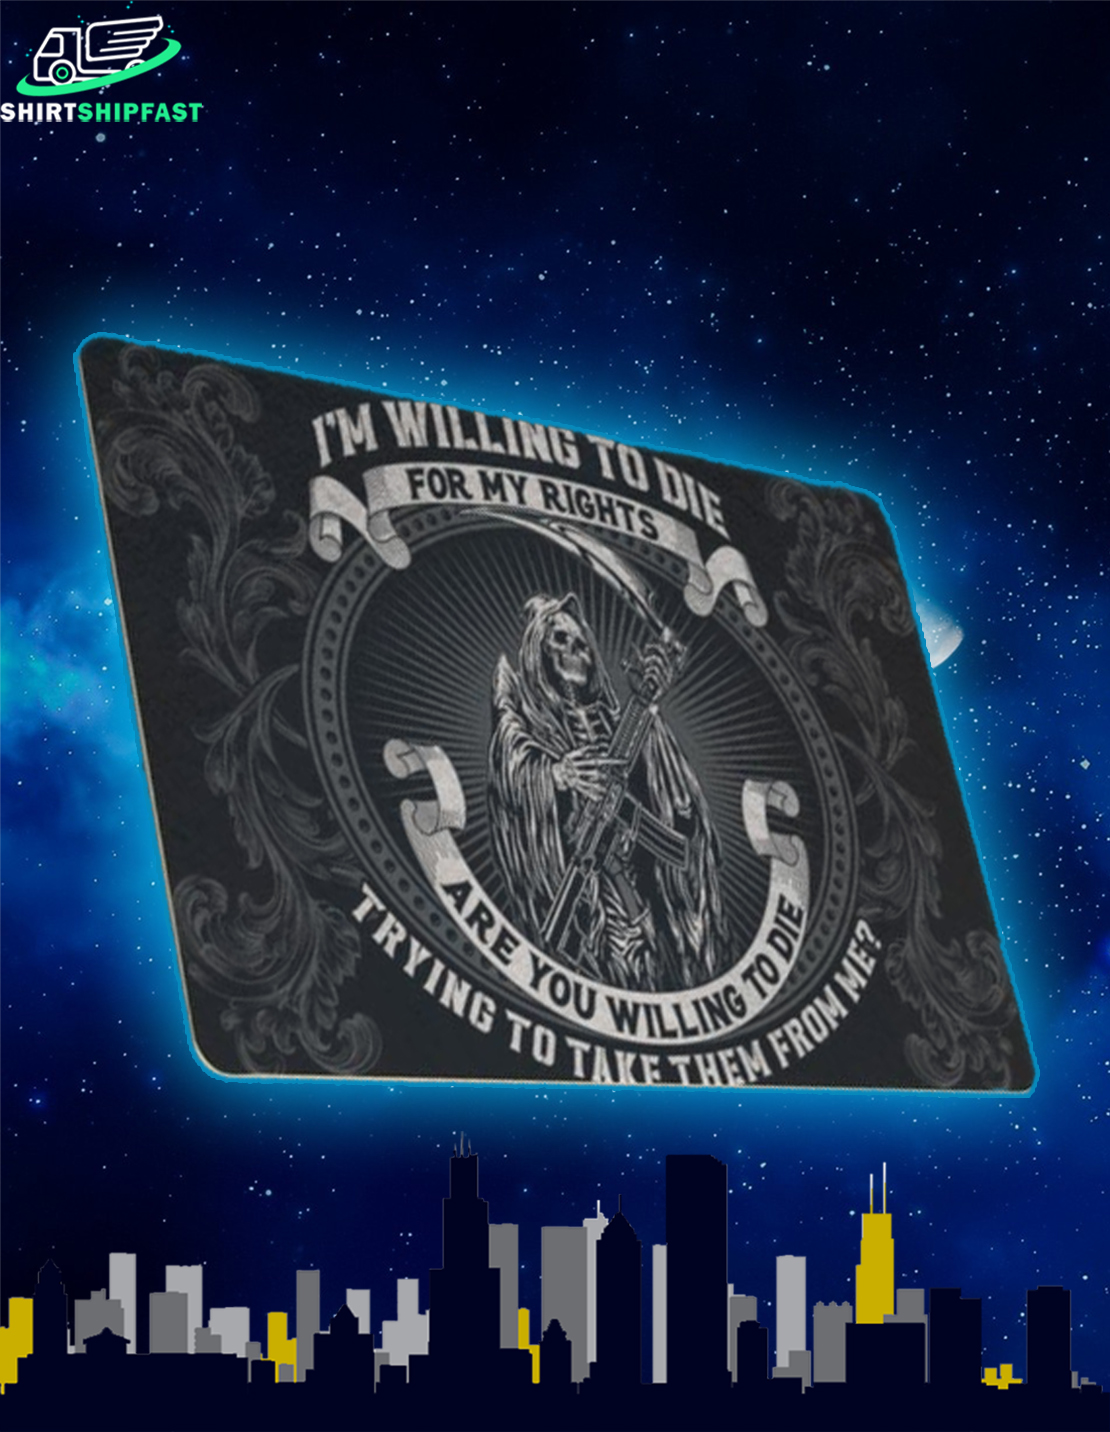 Grim Reaper Death I'm willing to die for my rights doormat - Picture 2